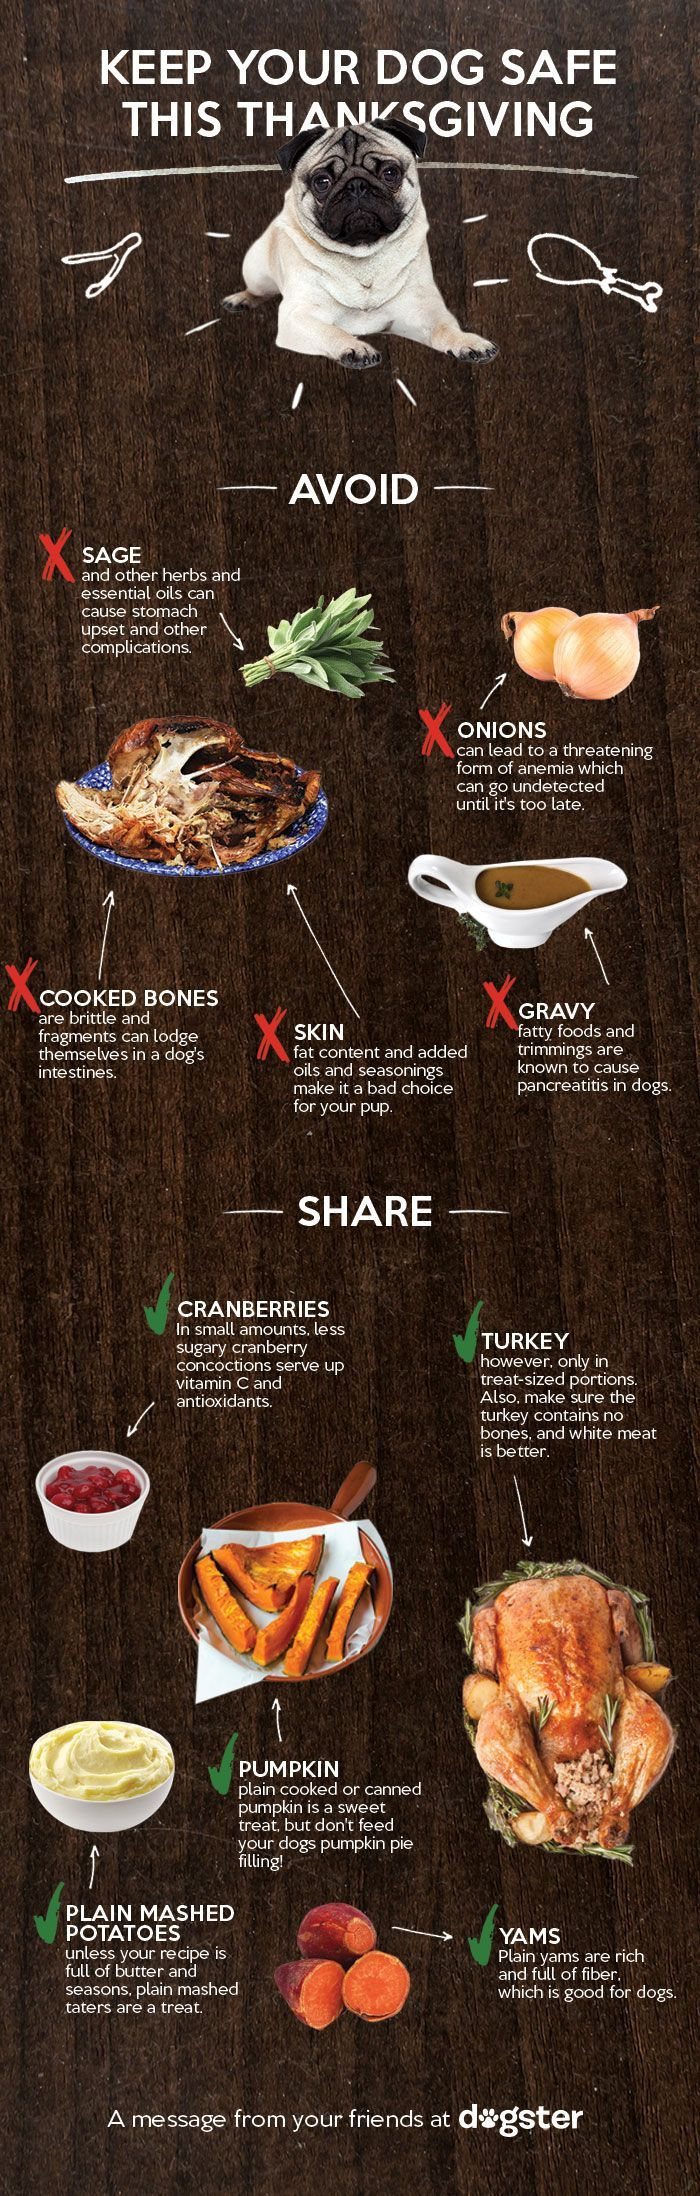 Keep your dog safe this Thanksgiving!  Do's and Don'ts of holiday sharing.  [infographic]